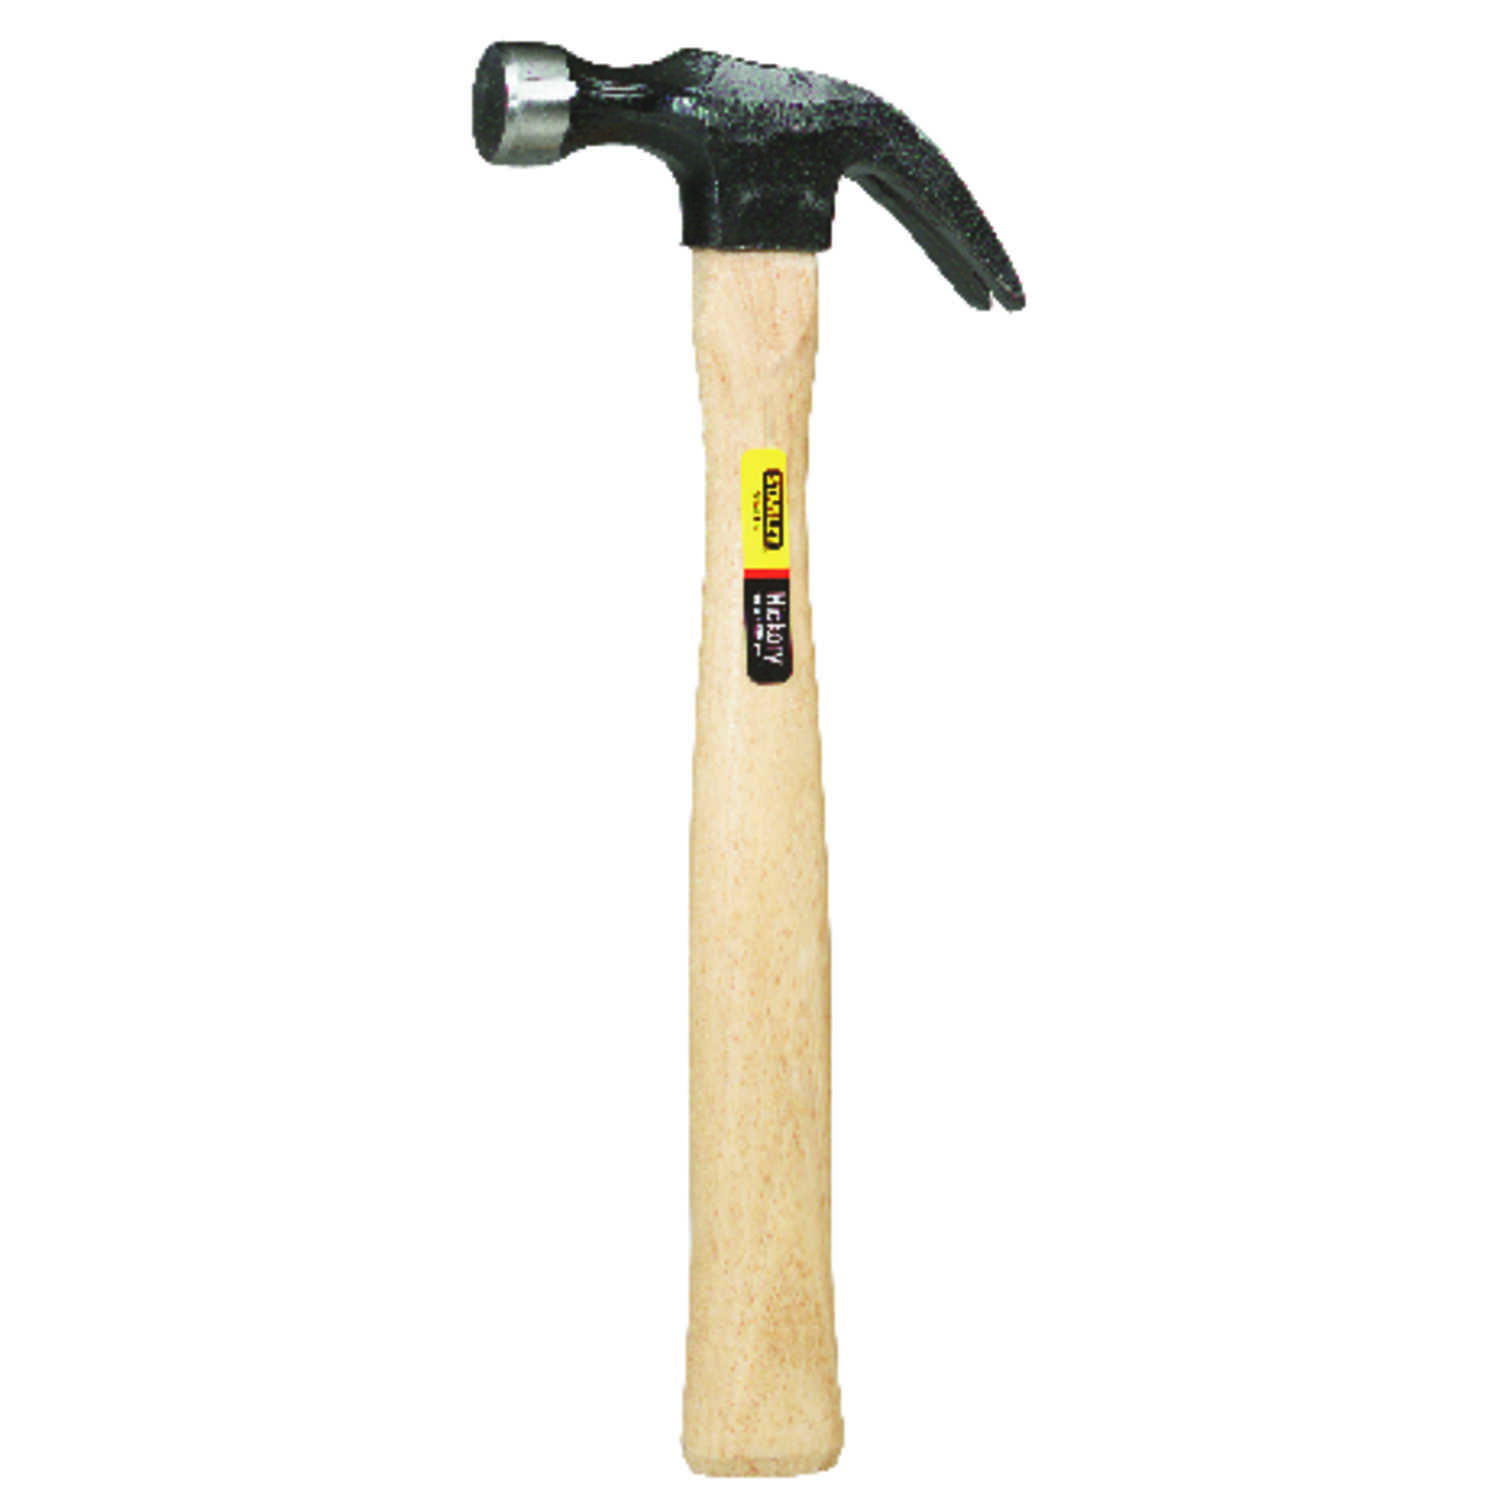 Stanley  16 oz. Curve Claw Hammer  Forged High-Carbon Steel  Wood Handle  13-1/4 in. L